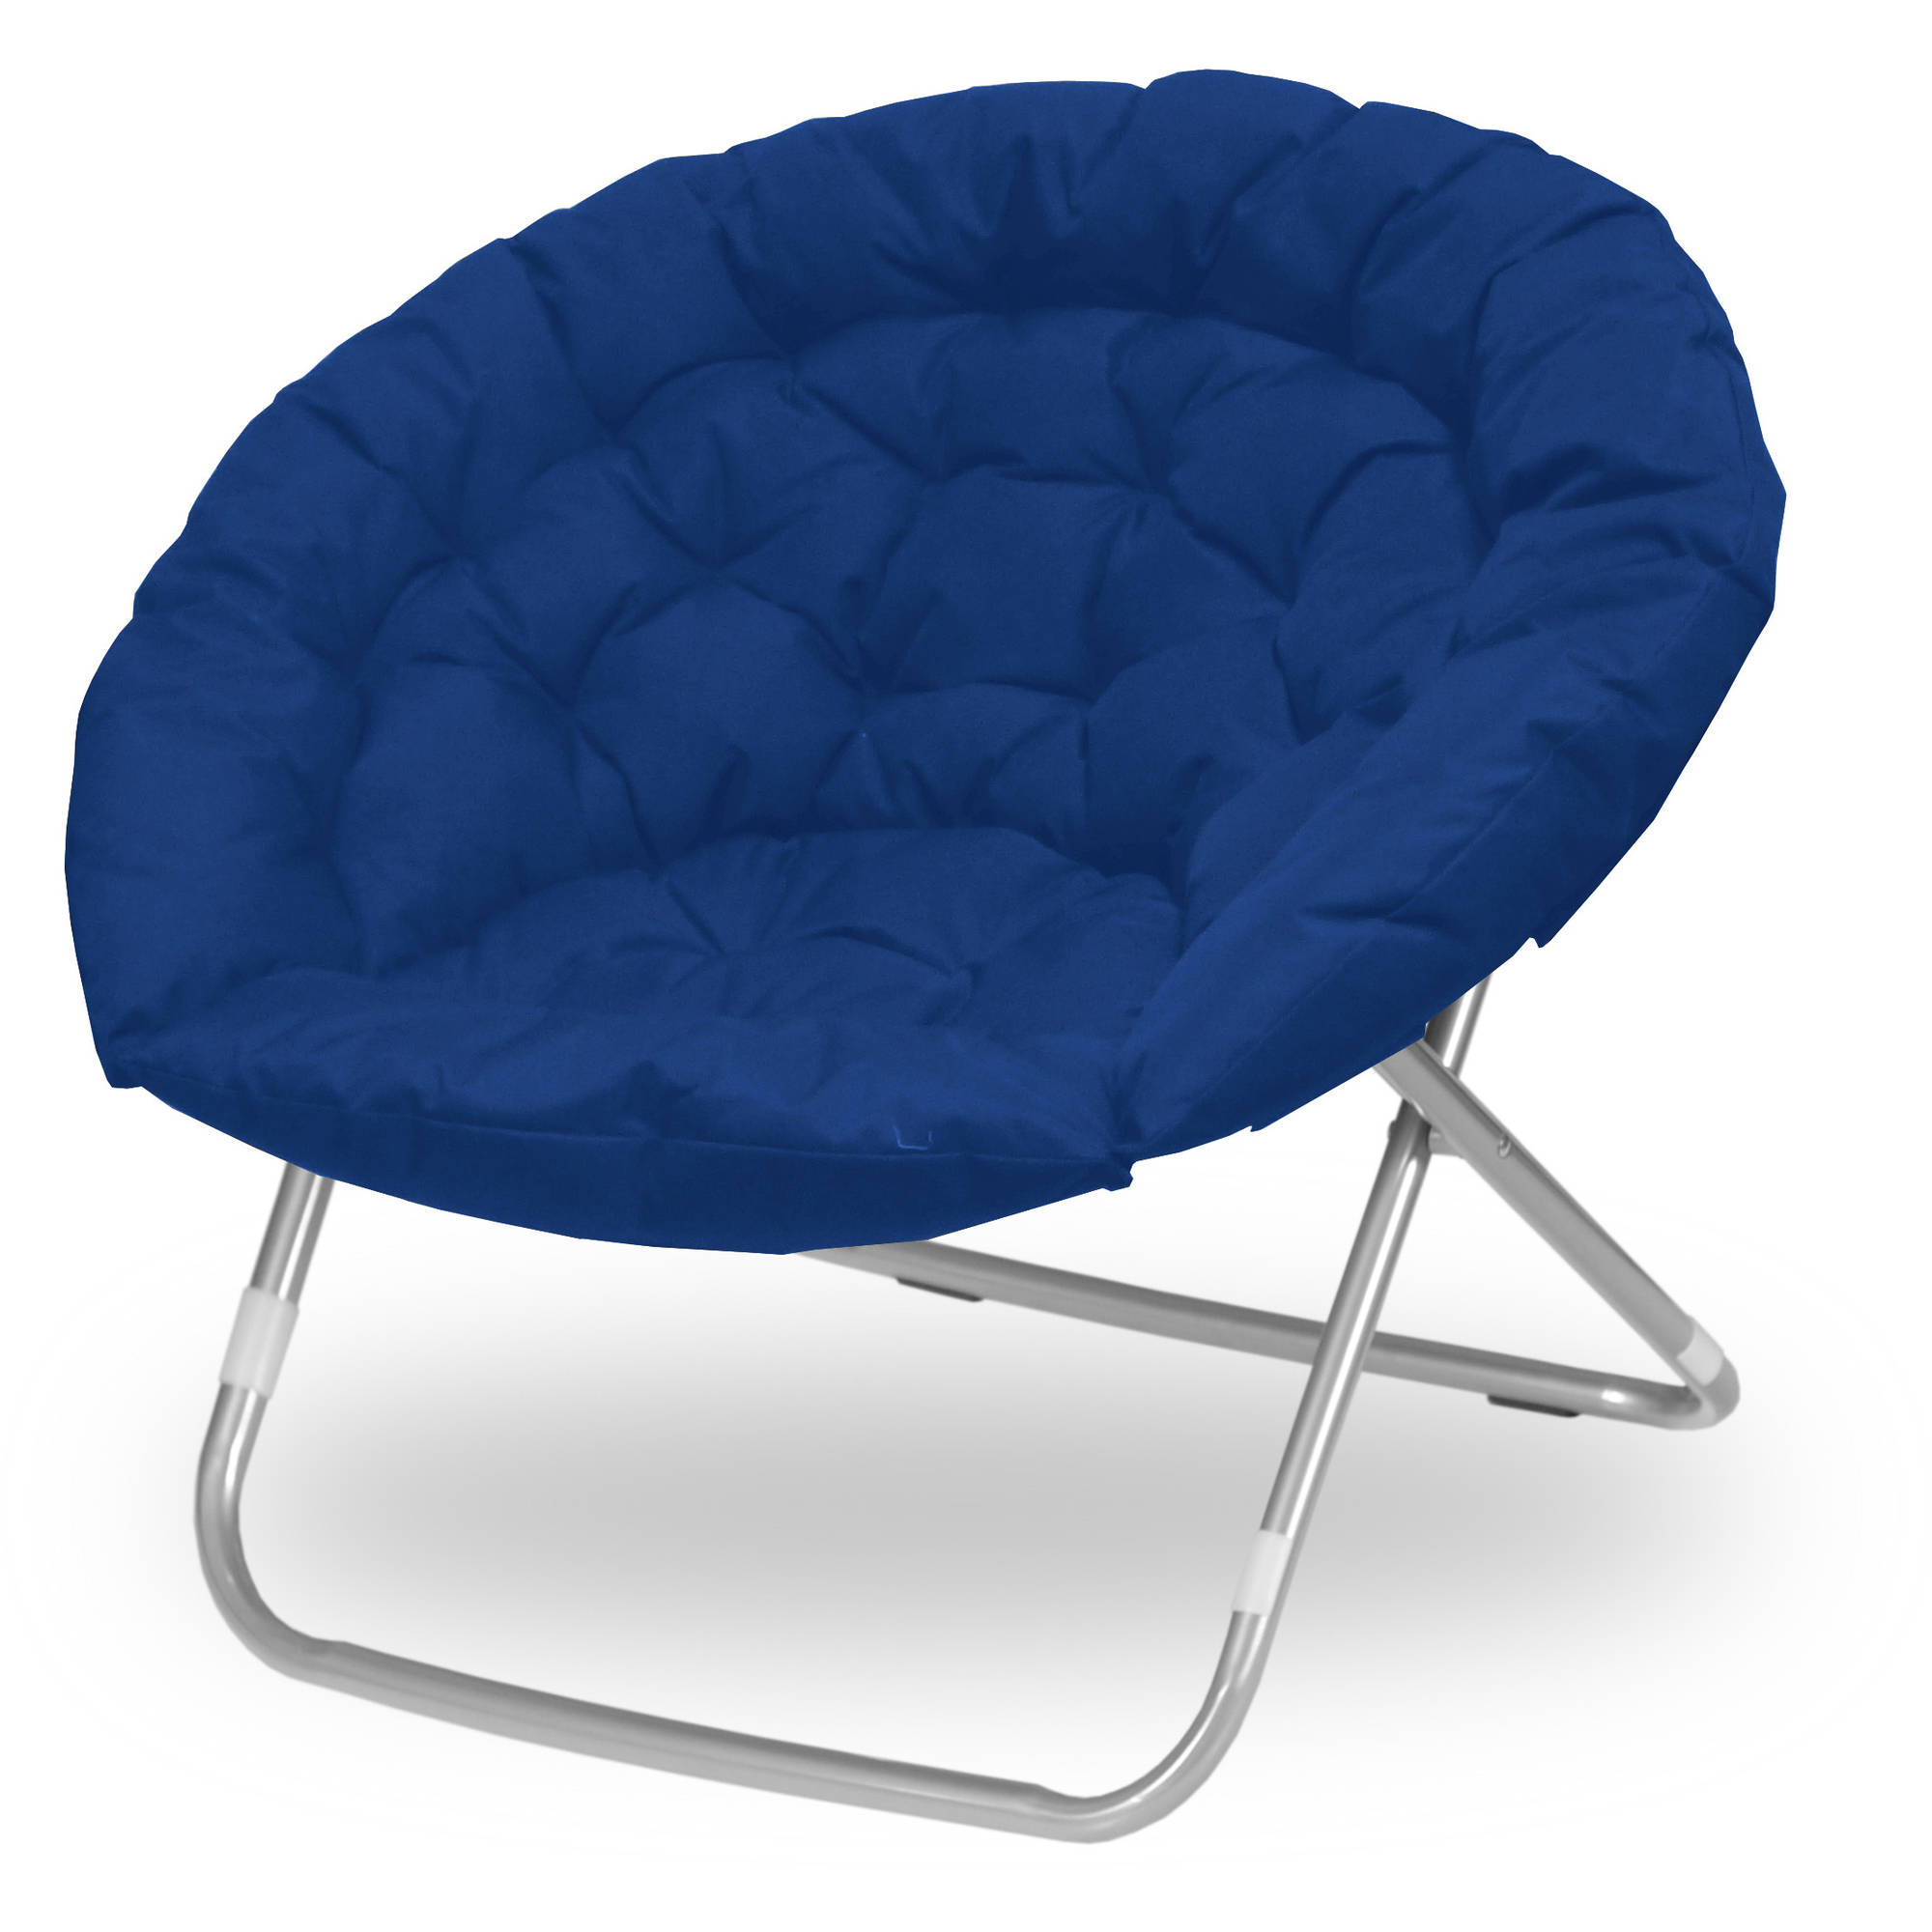 Urban Shop Oversized Adult Saucer Chair, Navy